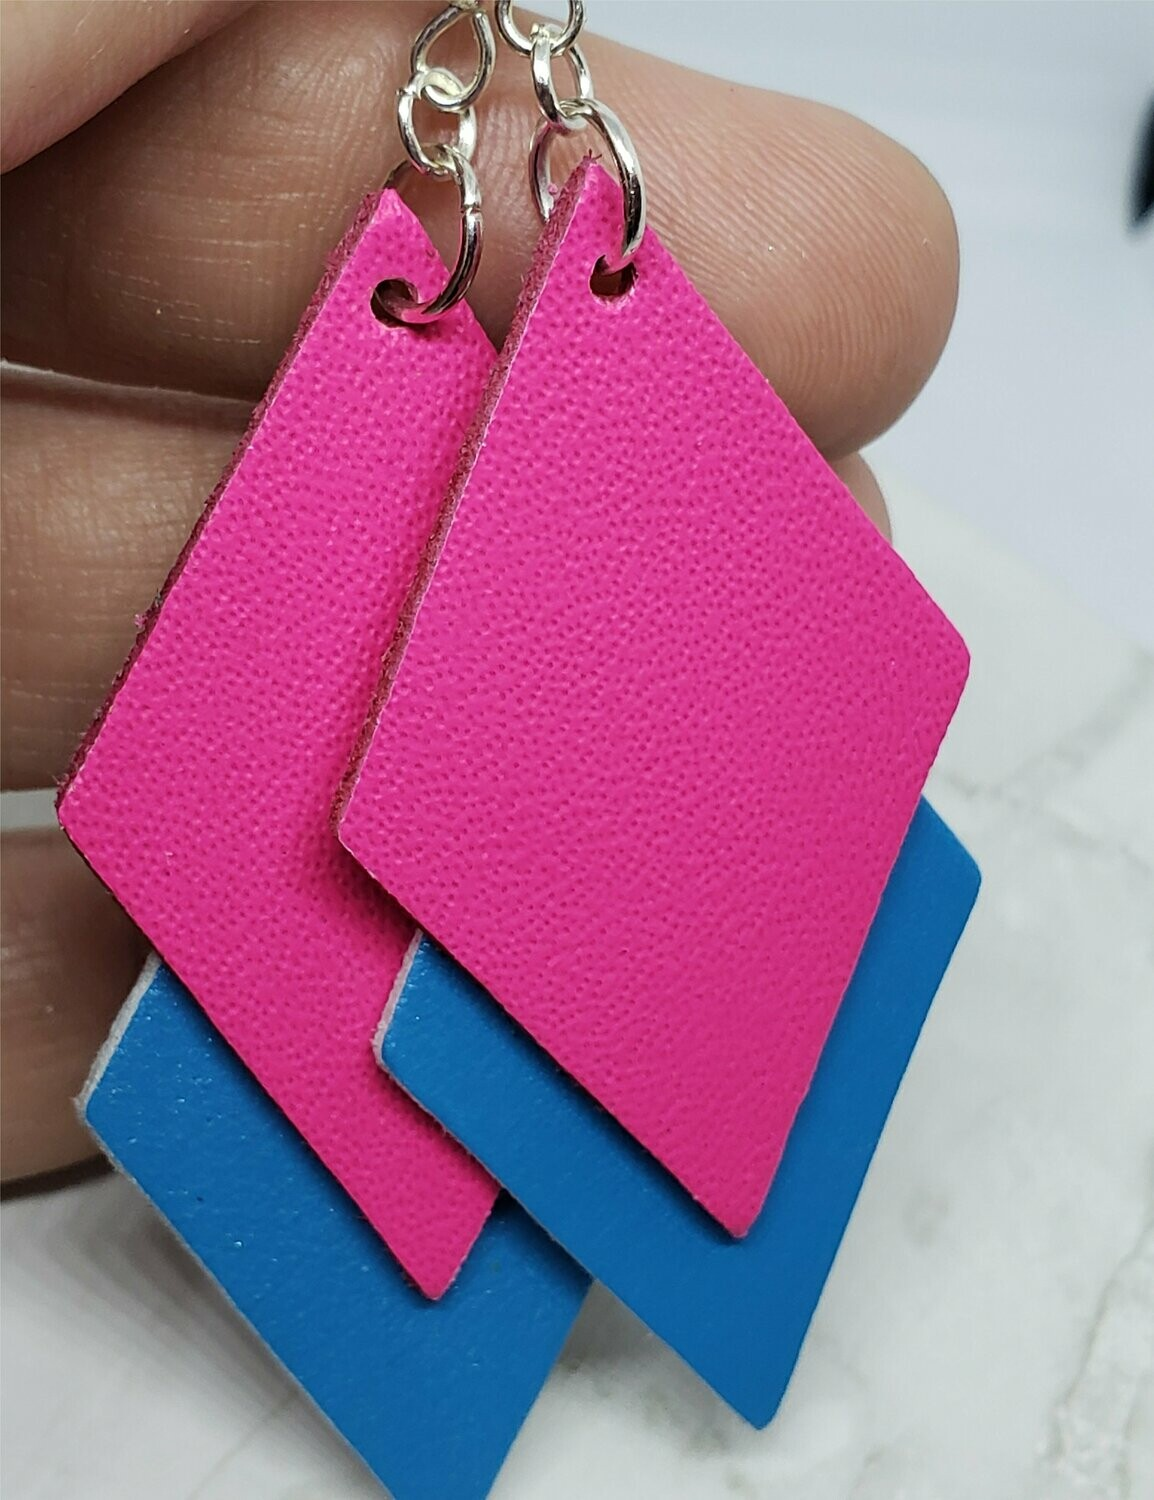 Hot Pink and Electric Blue Layered Diamond REAL Leather Earrings